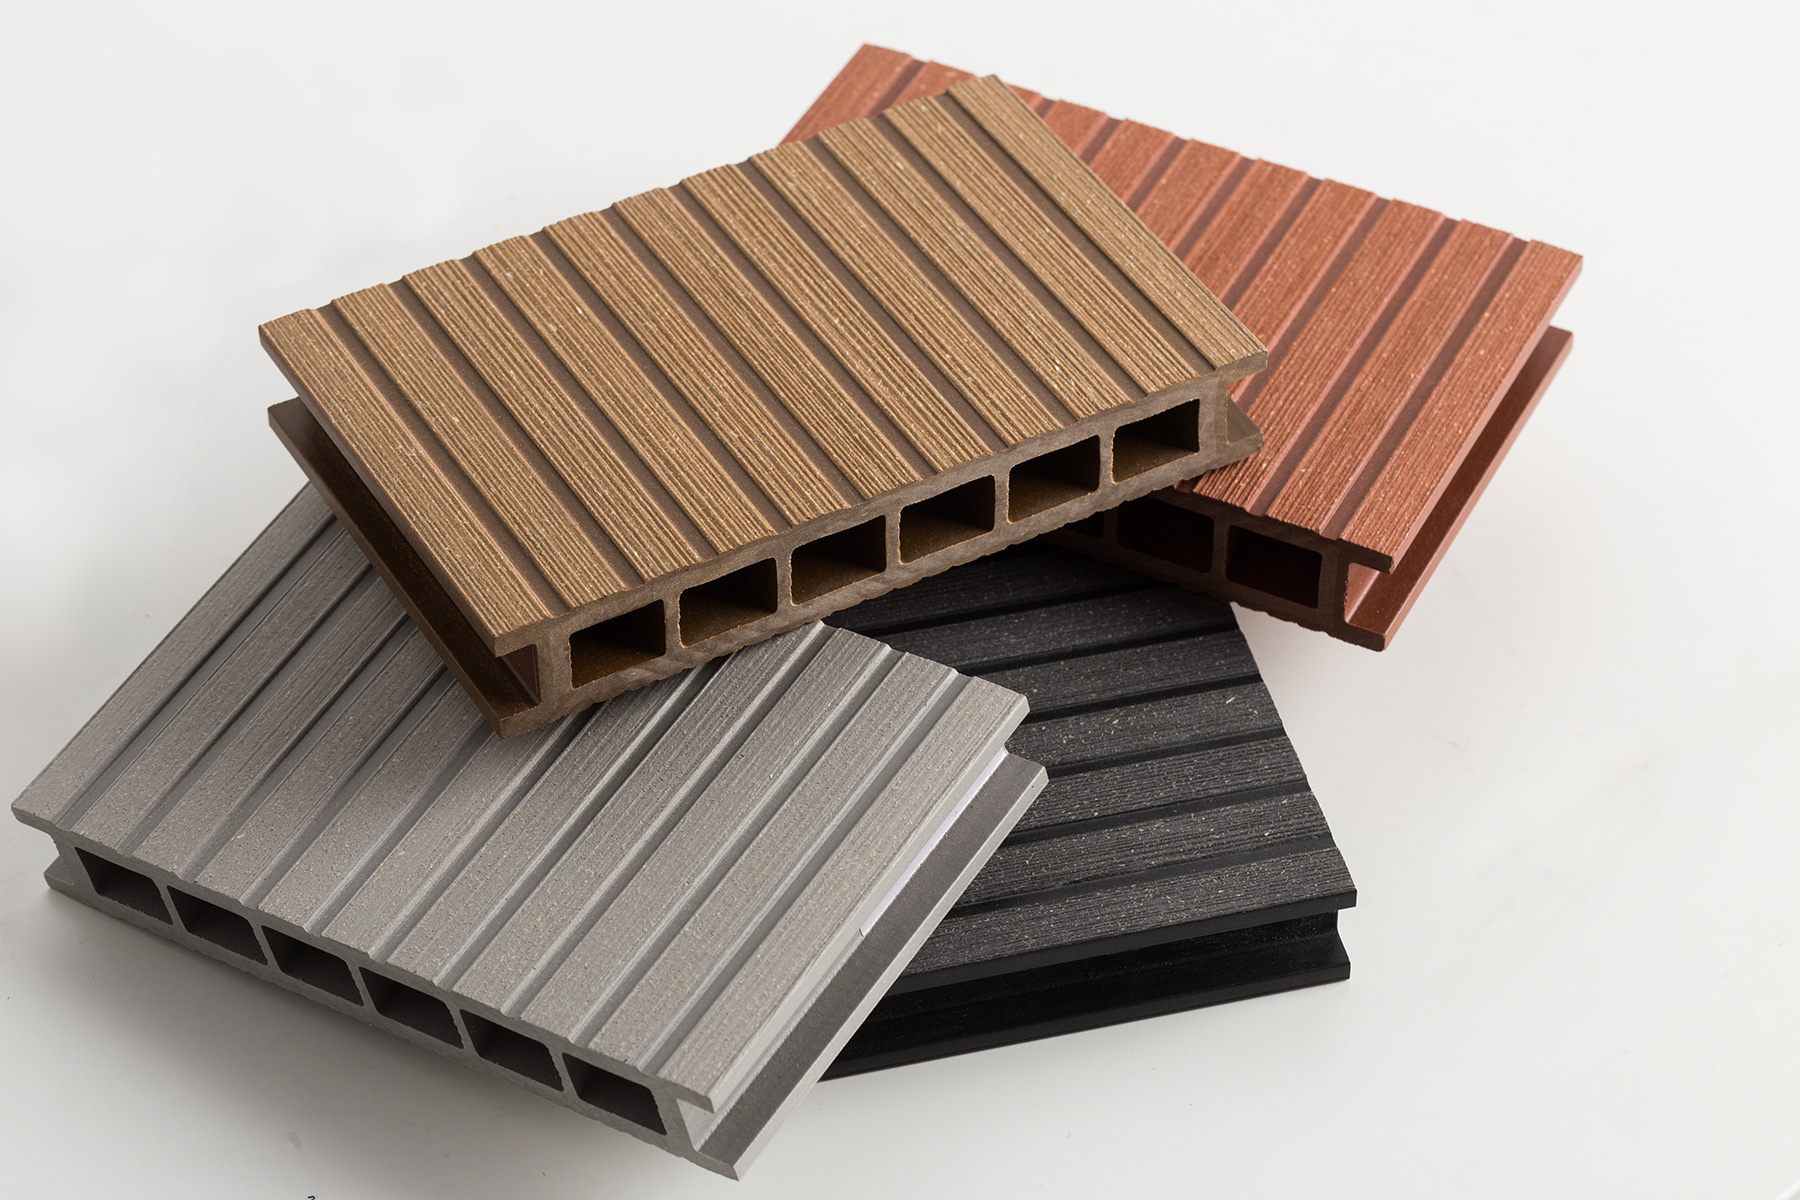 Mounting of the terrace board. Material specifications